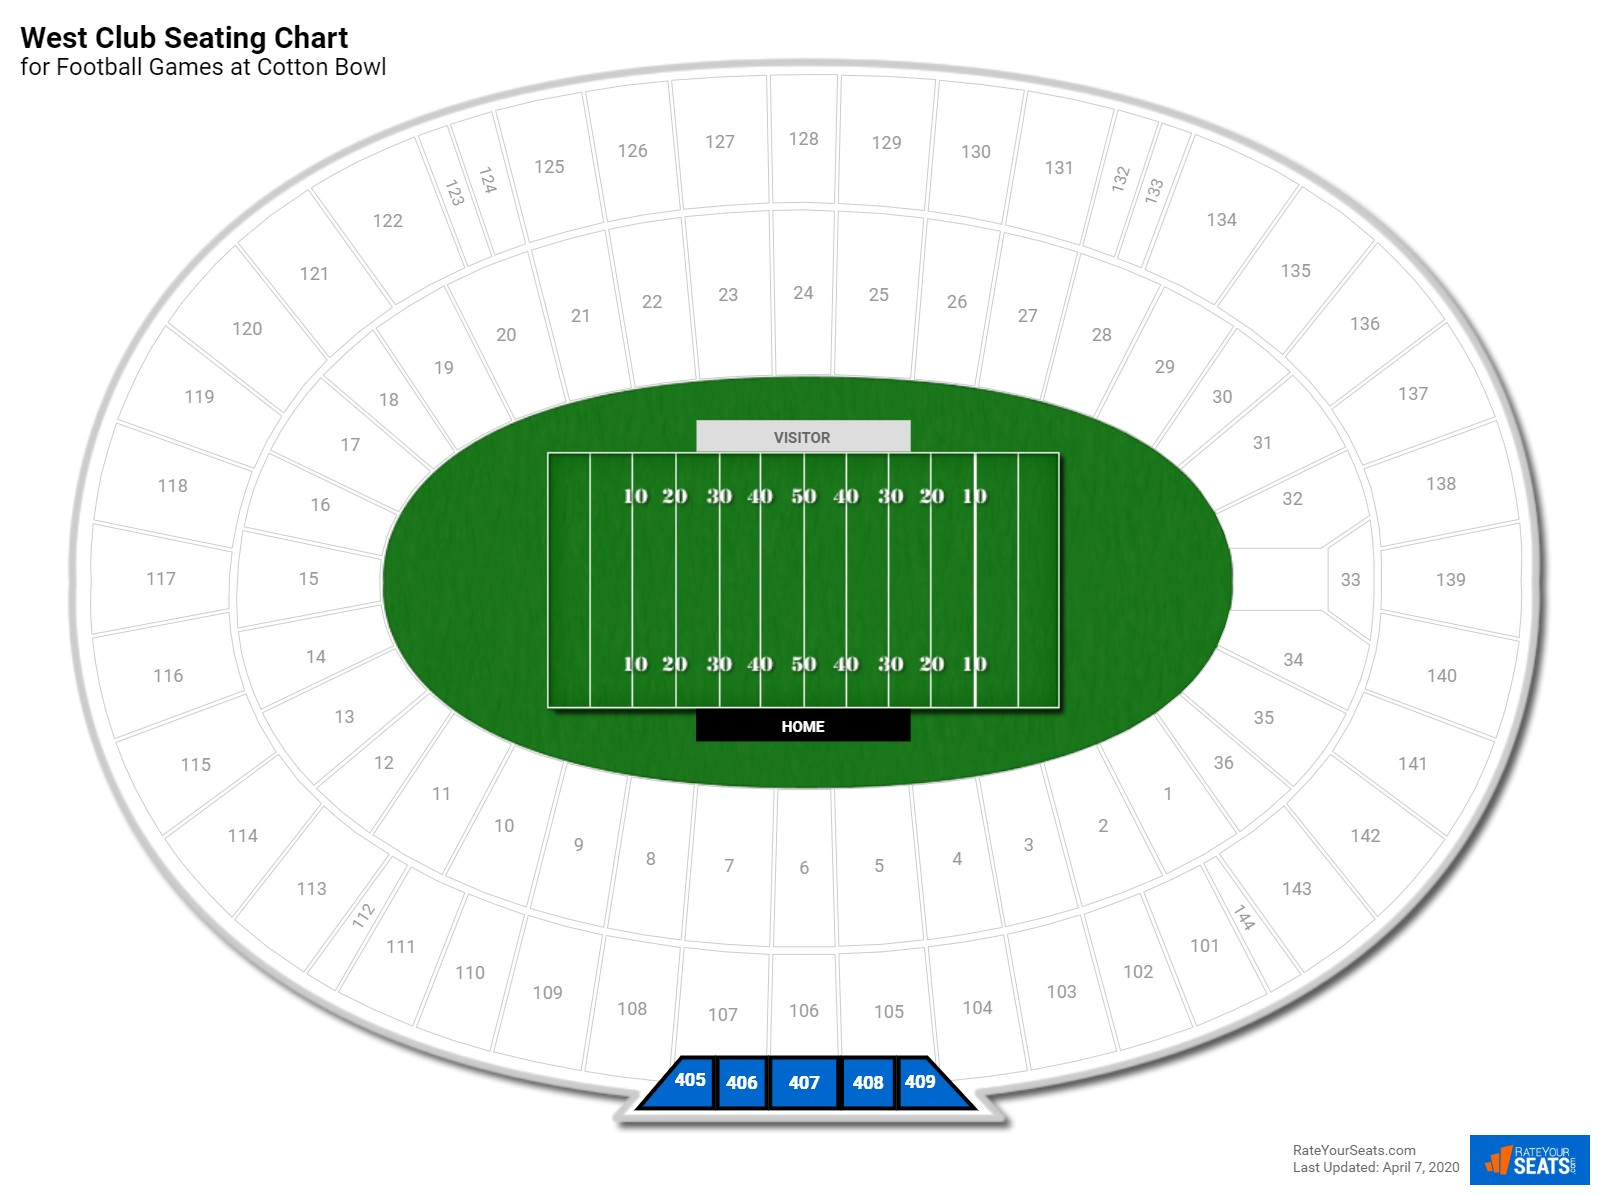 Cotton Bowl West Club seating chart